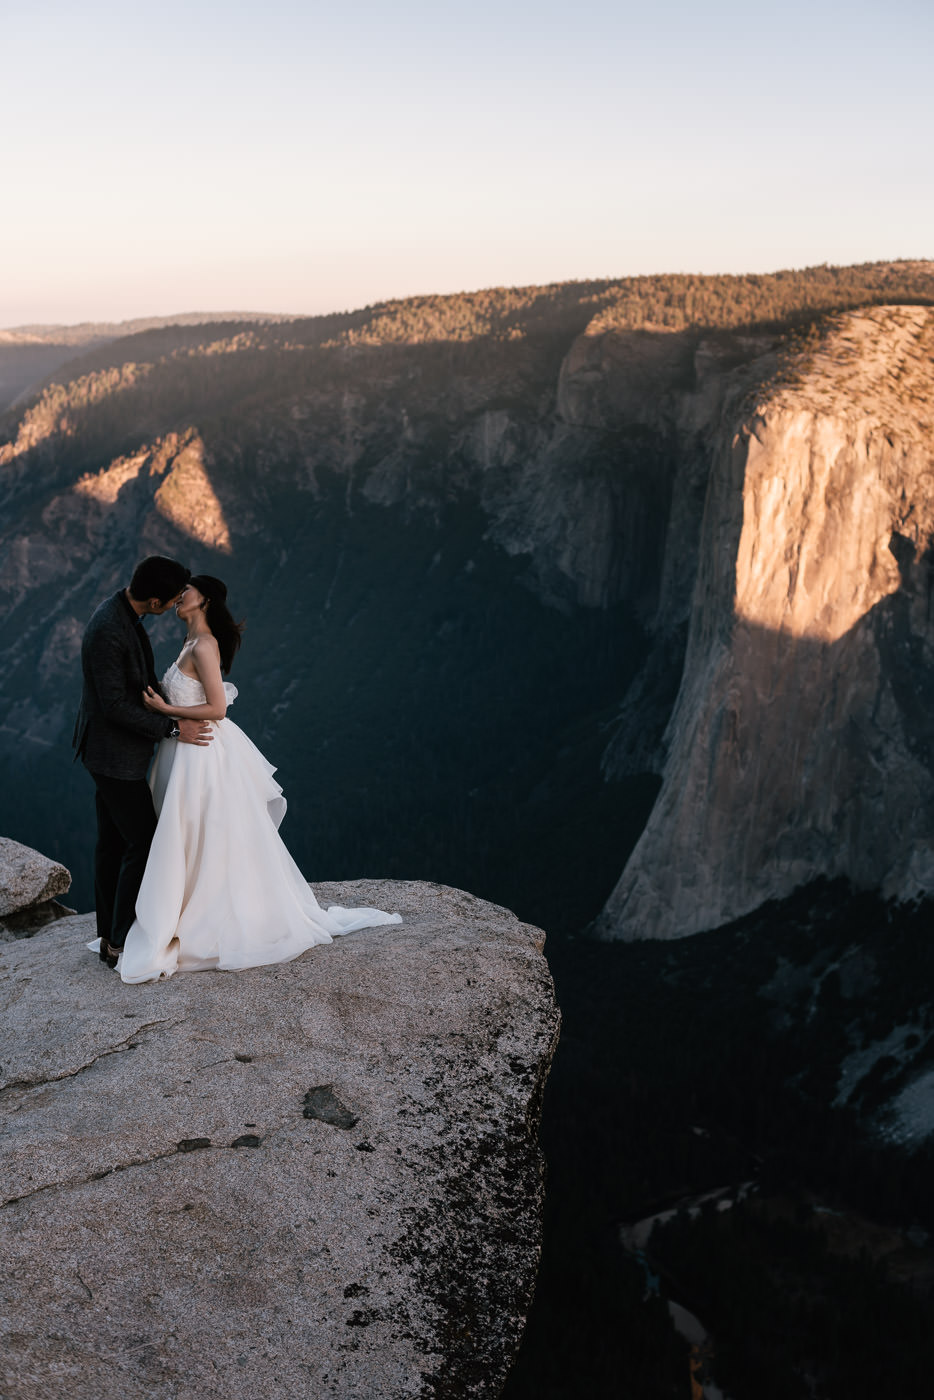 Groom is pulled in close to his wife for a passionate kiss in the wilderness of the national parks.